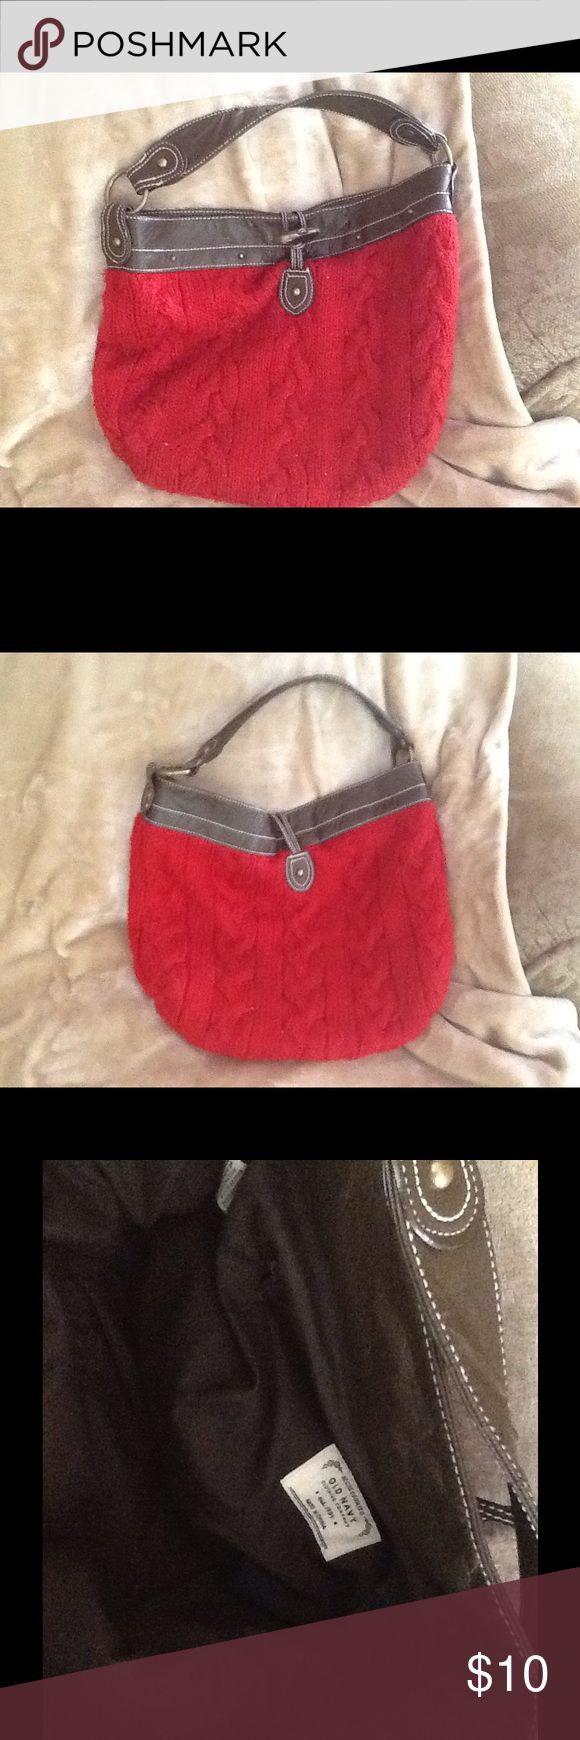 Old navy purse Vintage red cable knit purse with brown vegan trim. Clean with no stains or marks. Has 2 small nicks in brown trim. Old Navy Bags Hobos